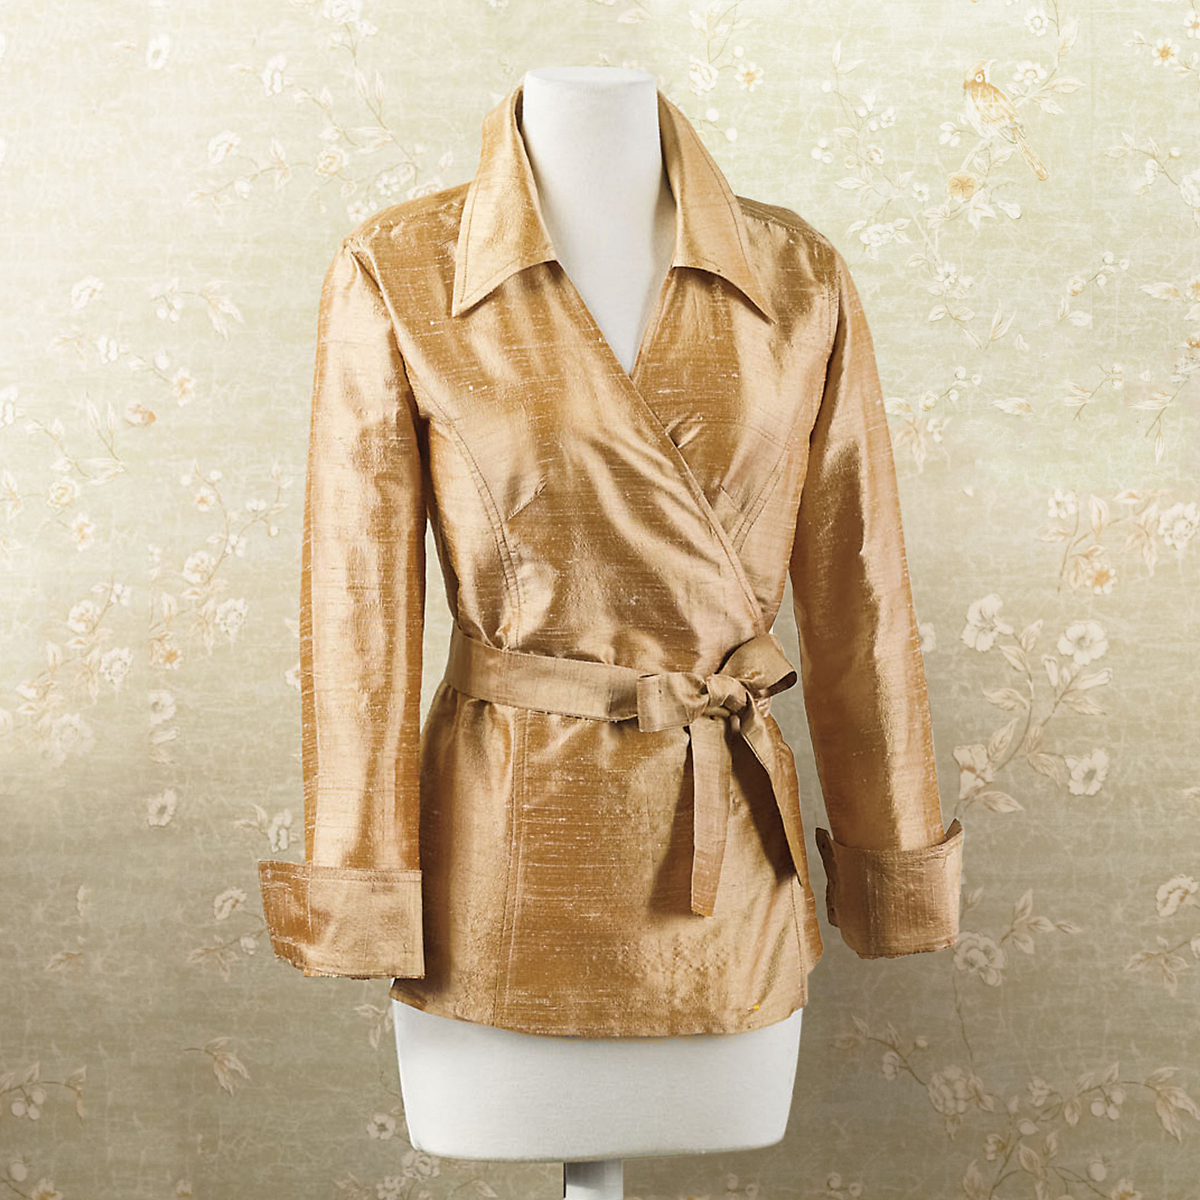 Silk Shantung Wrap Jacket